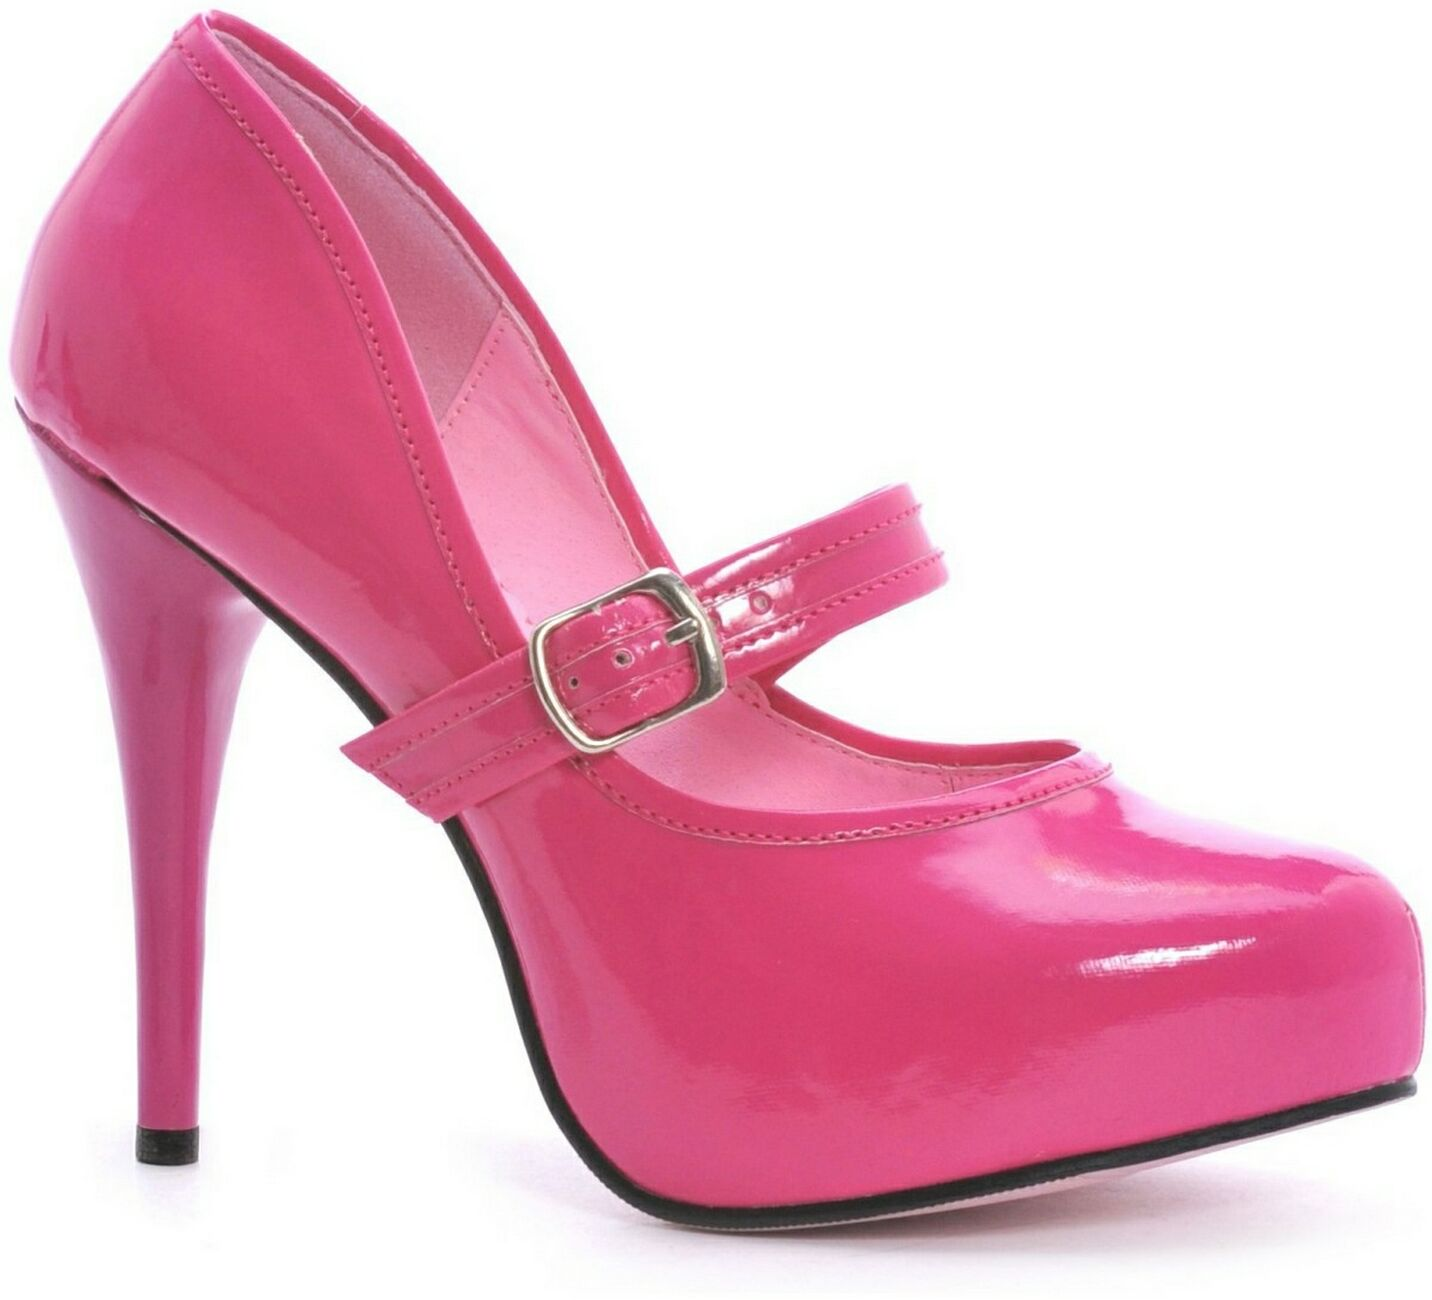 Pink Shoes Sale: Save Up to 75% Off! Shop onelainsex.ml's huge selection of Pink Shoes - Over 2, styles available. FREE Shipping & Exchanges, and a % price guarantee!